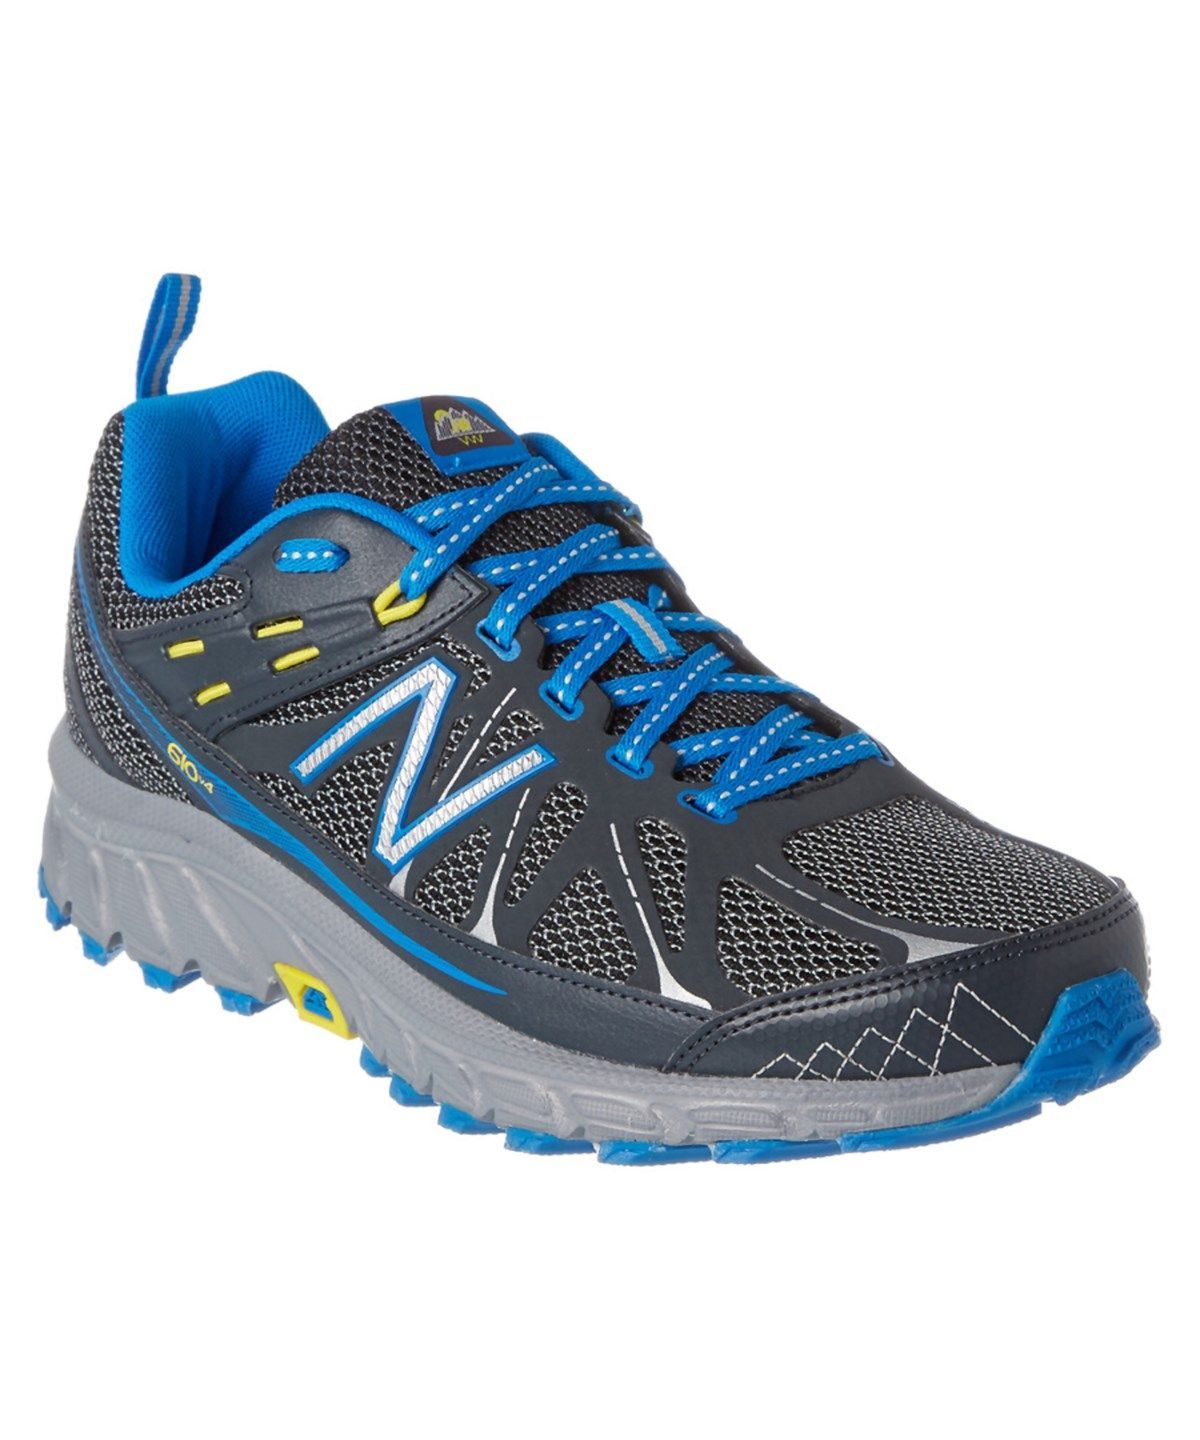 TRAIL MEN'S 610V4 BALANCE NEW BALANCE NEW SHOE RUNNING kuOlwZiPXT